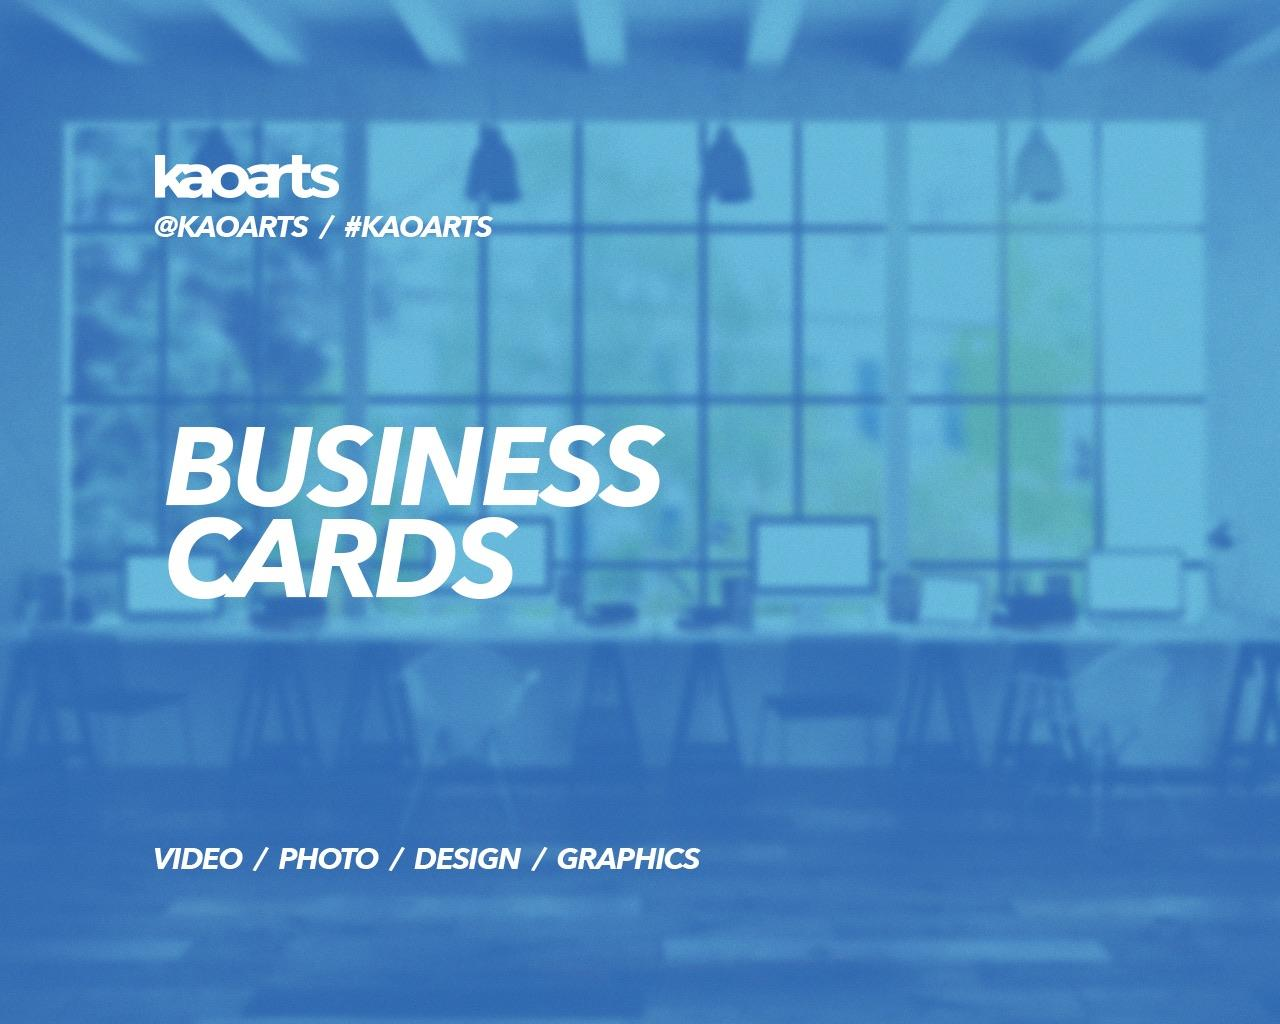 Professional Business Cards by Kaoarts - 95842